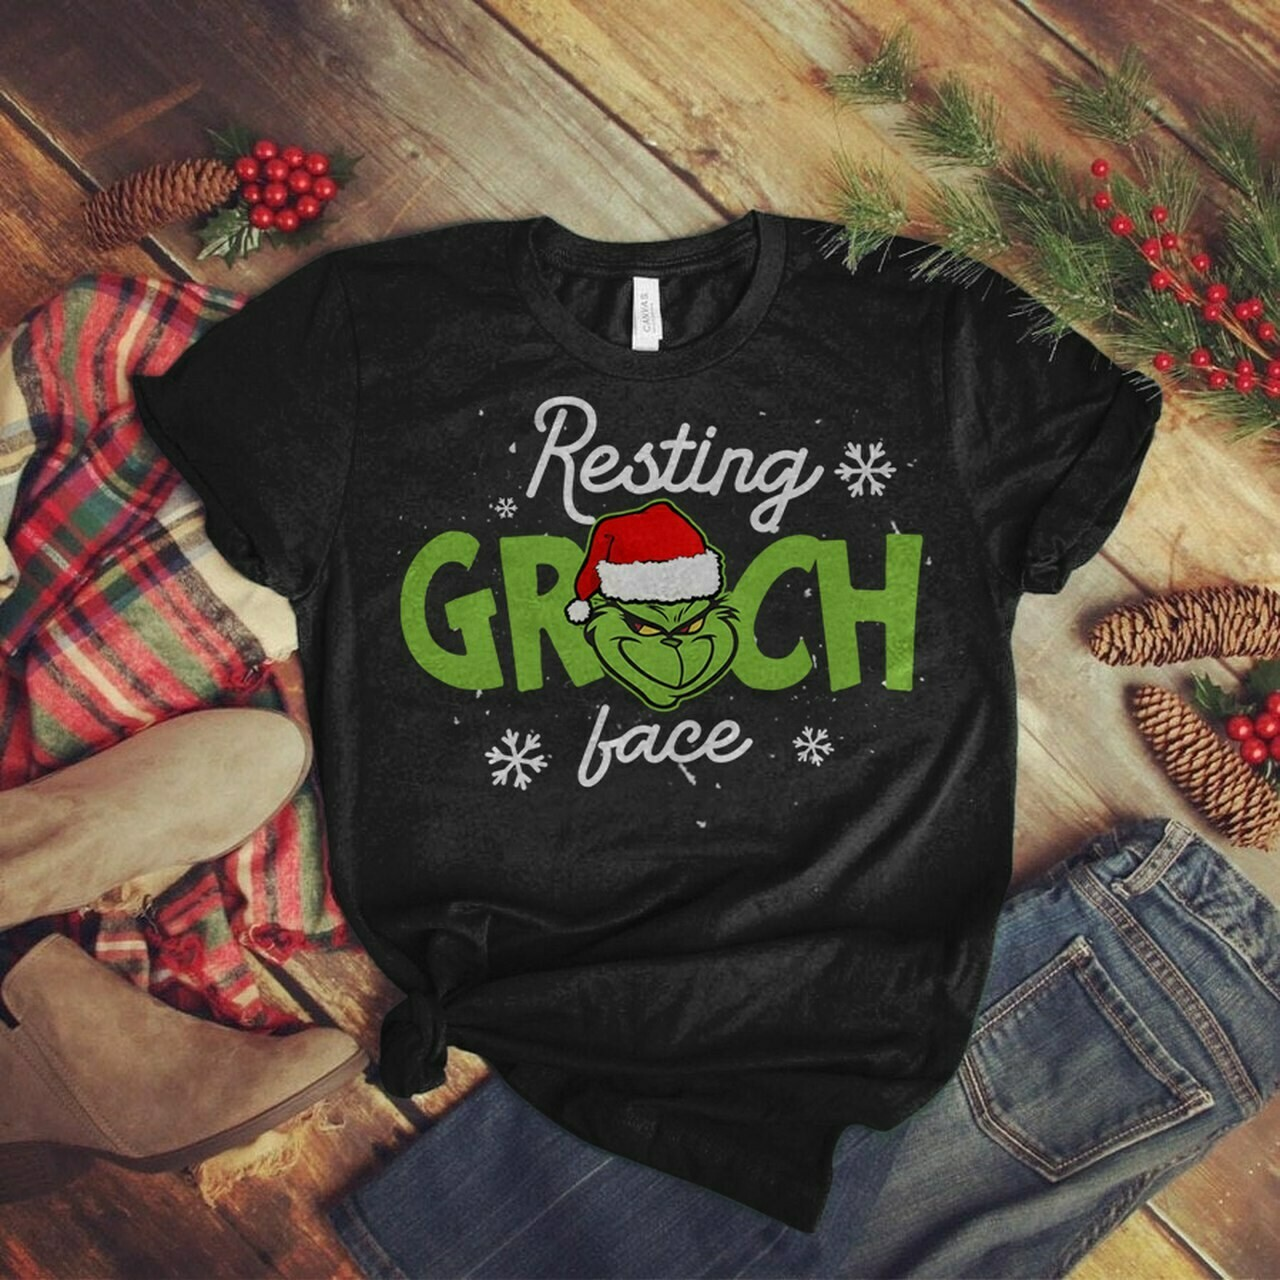 Resting Grinch Face Shirt, Funny Christmas Grinch T-Shirt, Resting Grinch Face, Grinch Face Shirts, Grinch Christmas Tee, Grinch T-Shirts, Christmas Shirts, Christmas T-Shirt, Grinch Movie Shirts